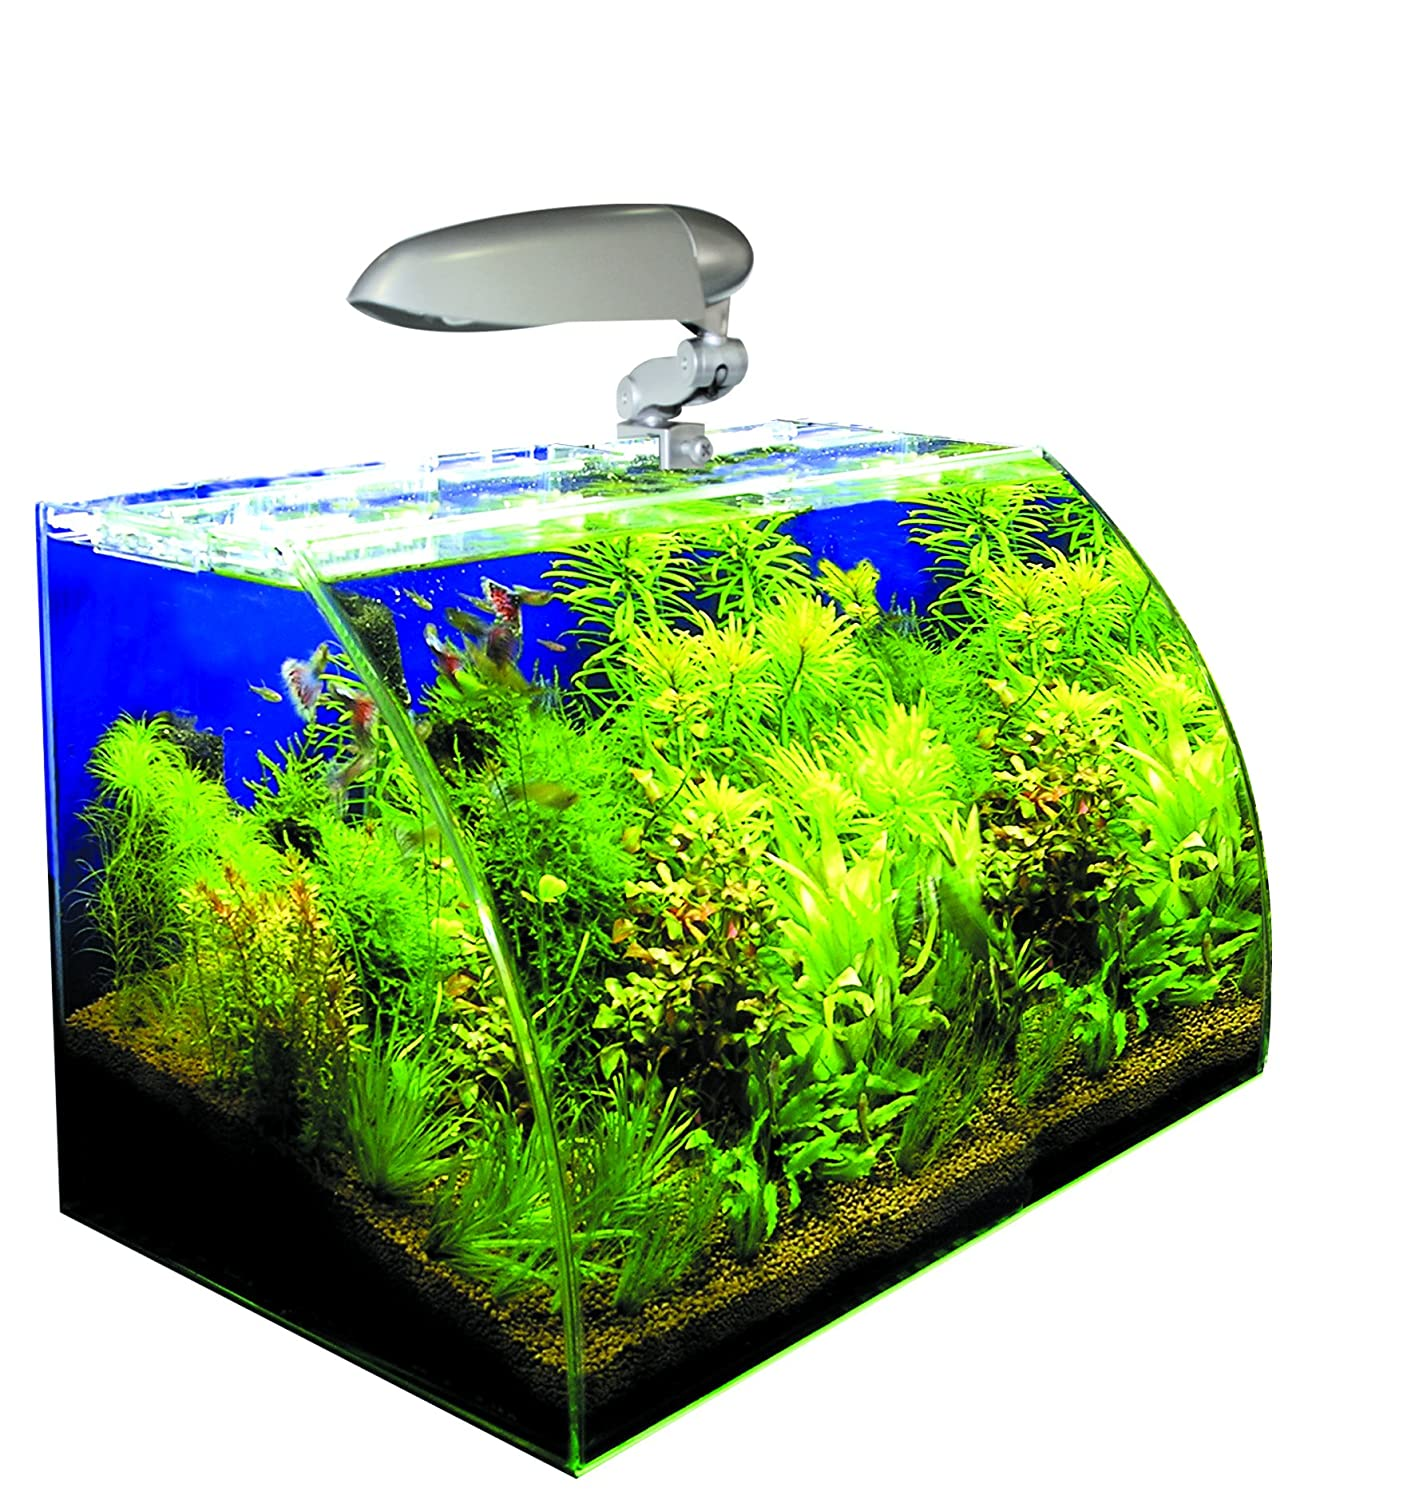 Wave Acquario Box Vision 45 Cosmo S Croci A2001557